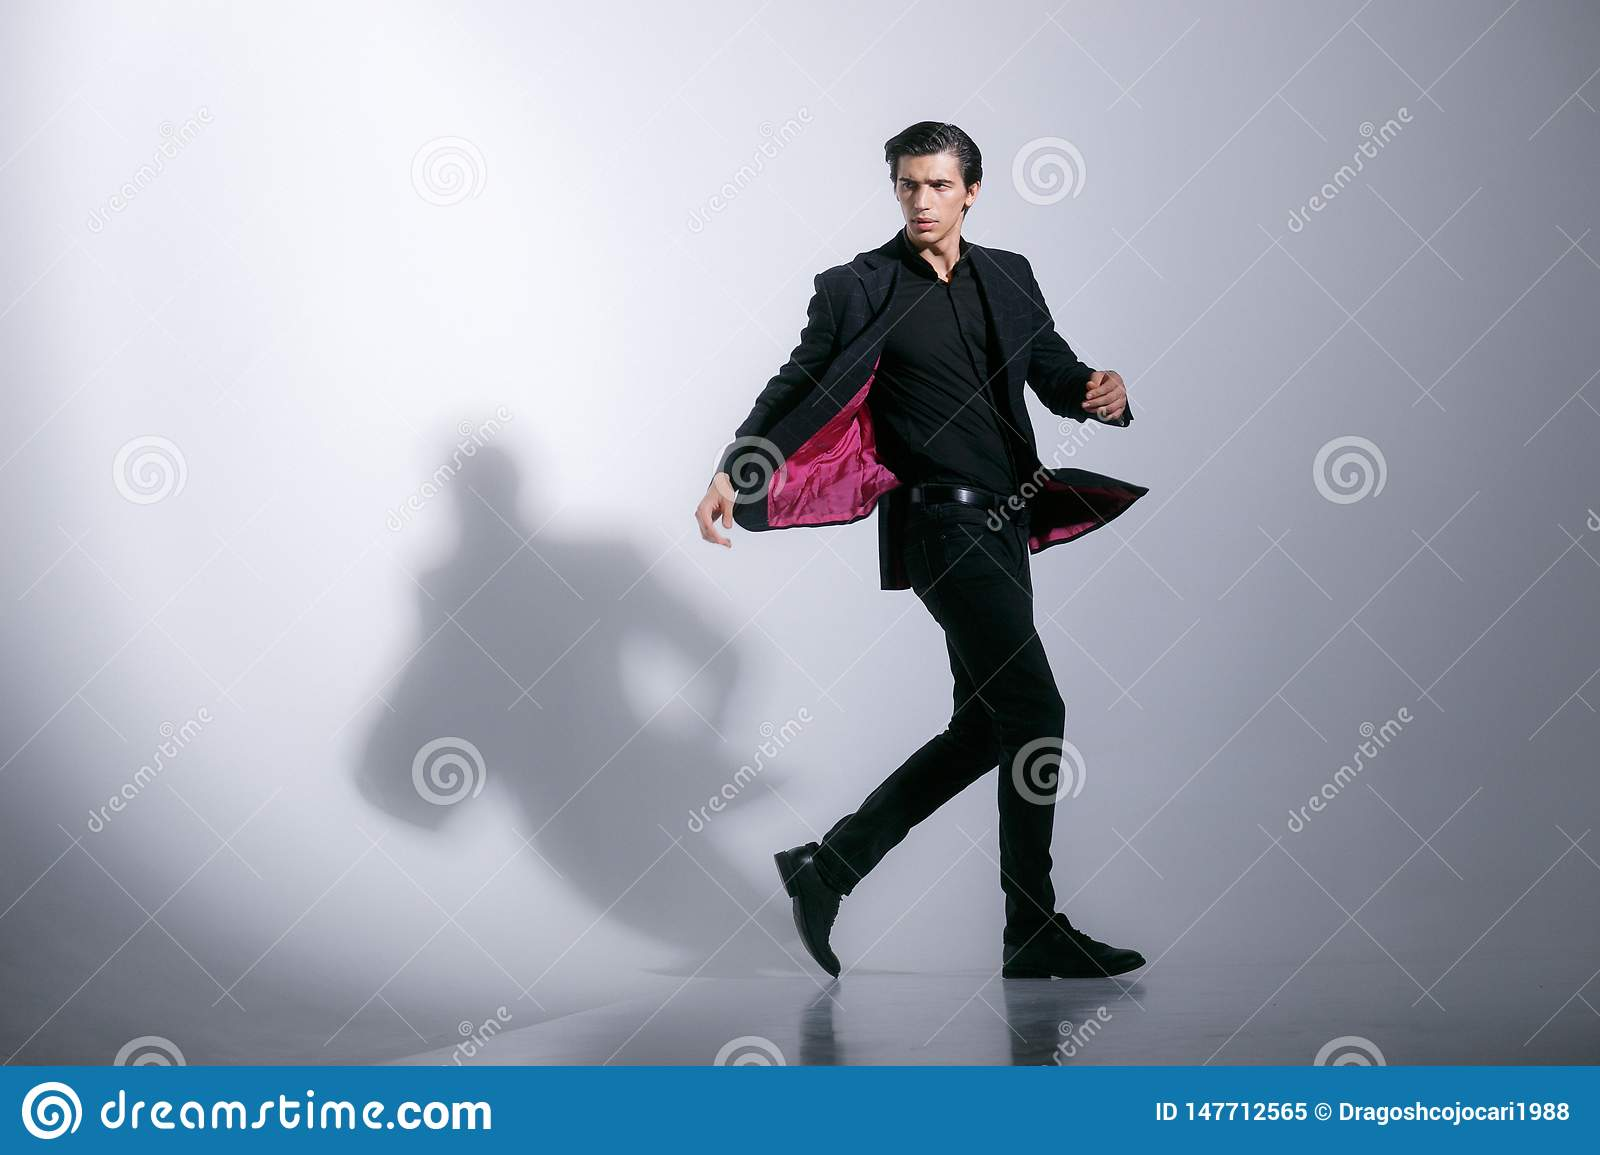 Motion image of a attractive strong young man in full elegant black suit isolated on